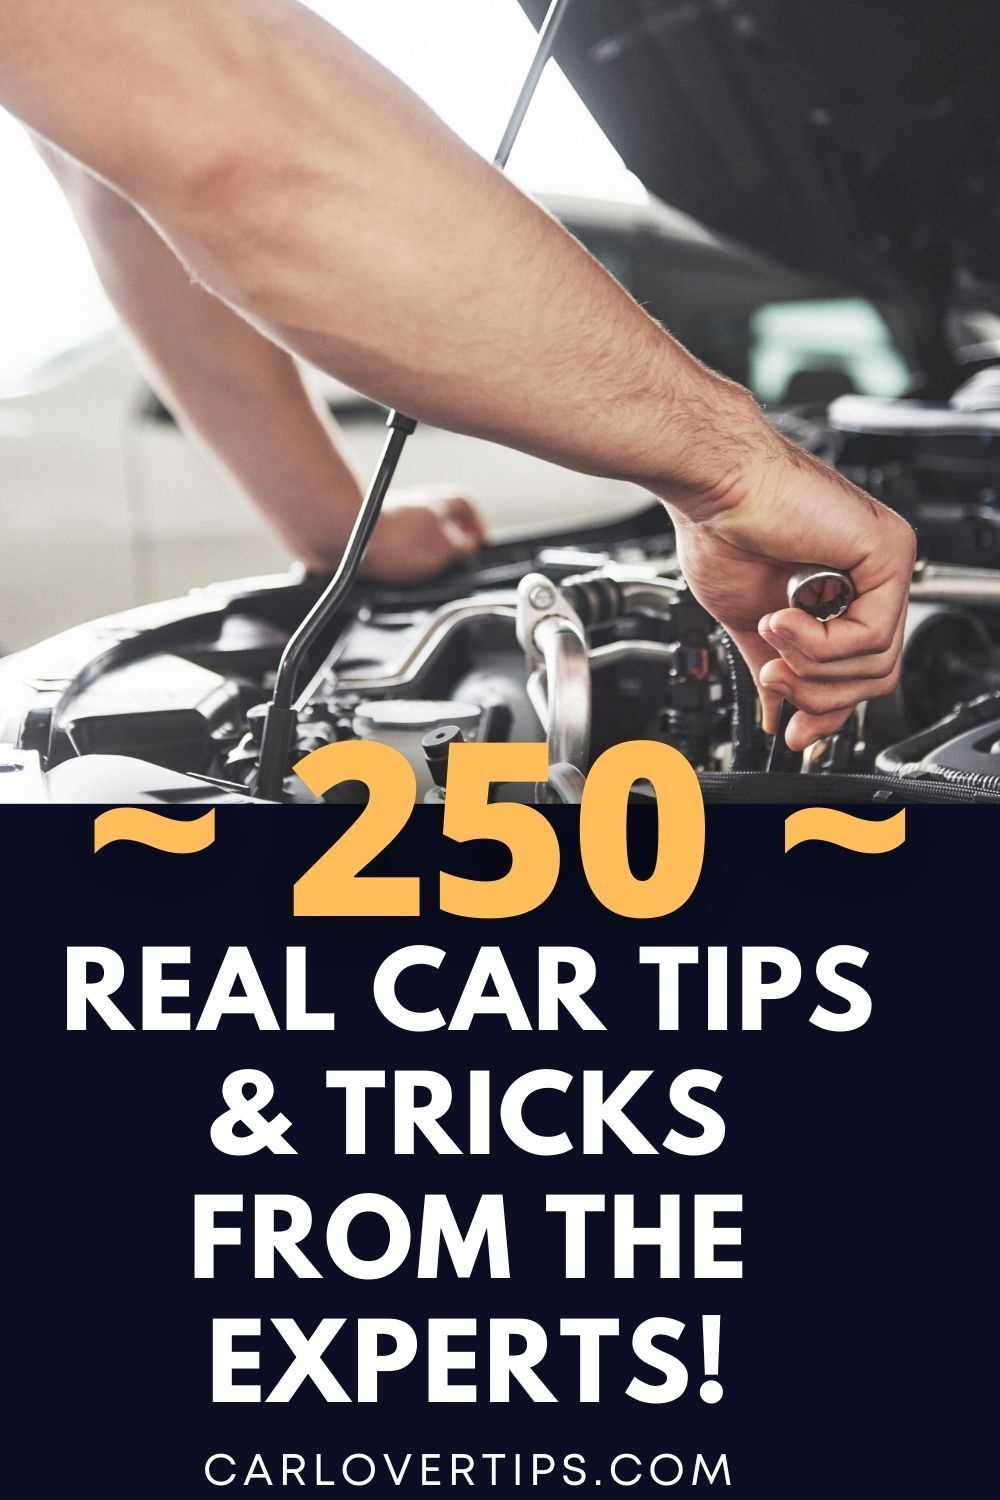 250 Real Car Tips & Tricks From The Experts - Car Lover Tips Pin